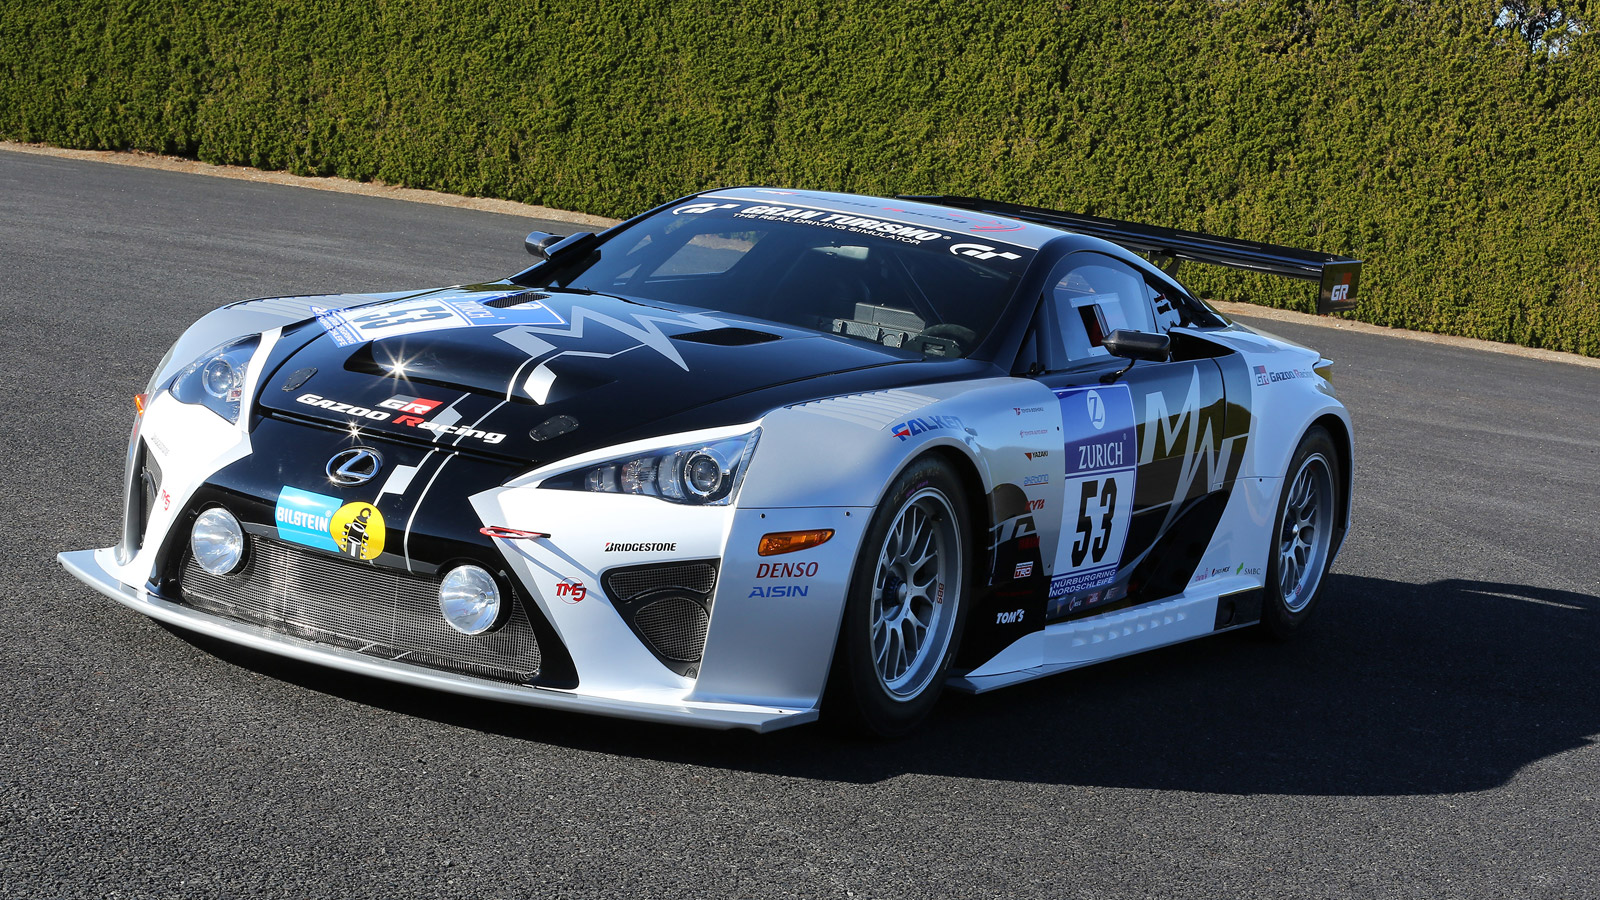 Lexus Reveals Upgraded LFA Code X Race Car For 2014 Nürburgring 24 Hours